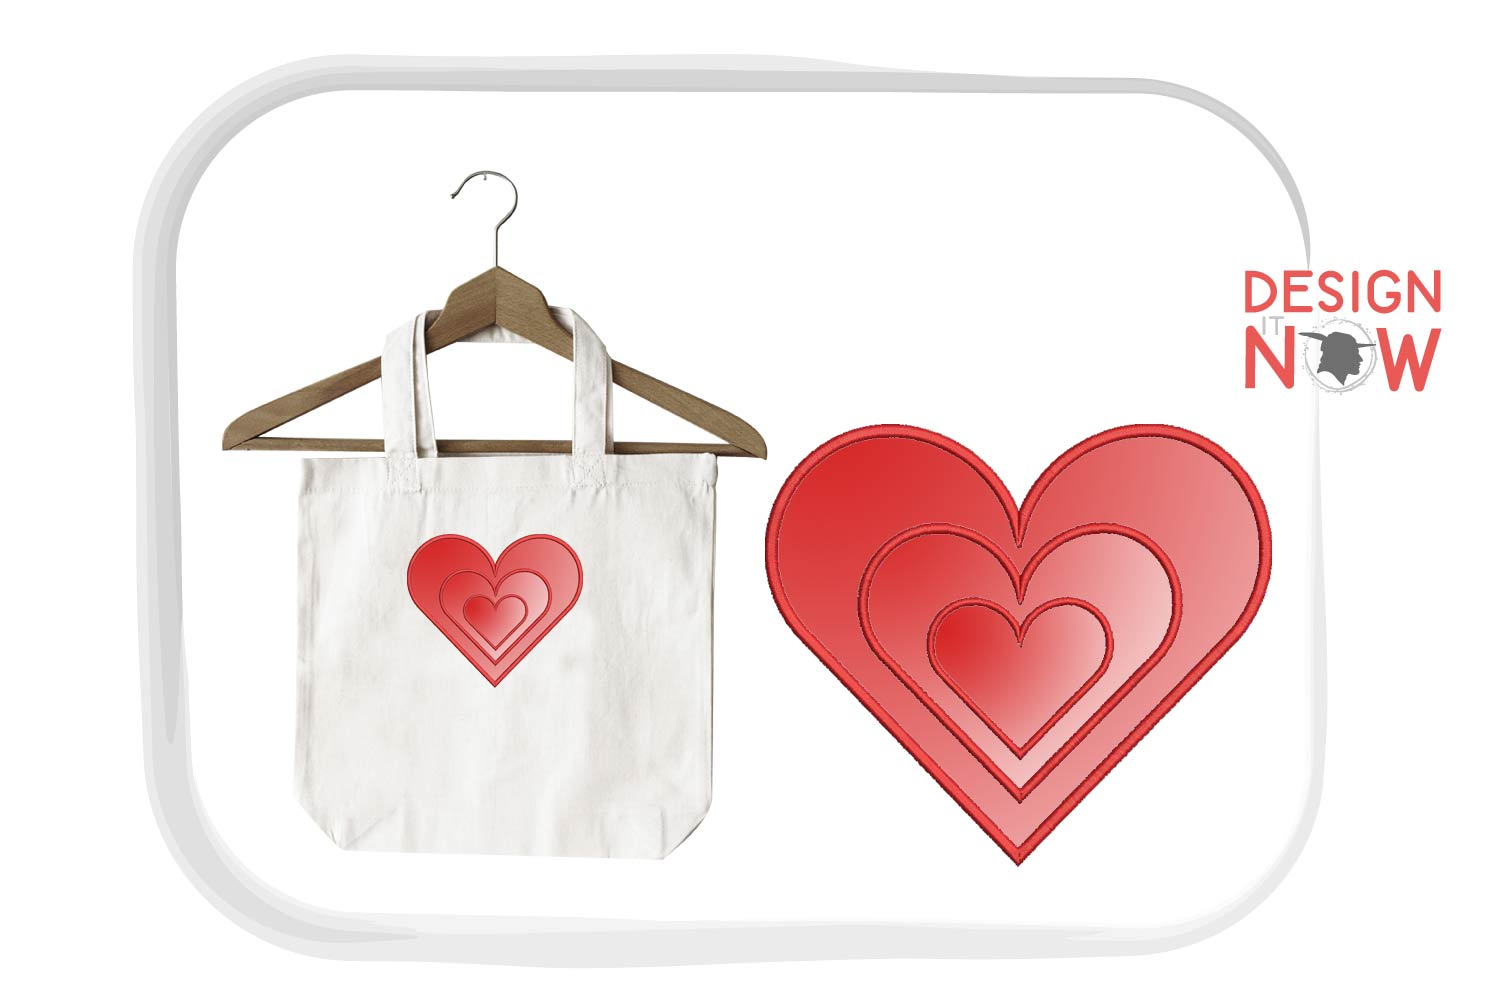 Heart Applique Embroidery Design, Heart Embroidery Pattern example image 3